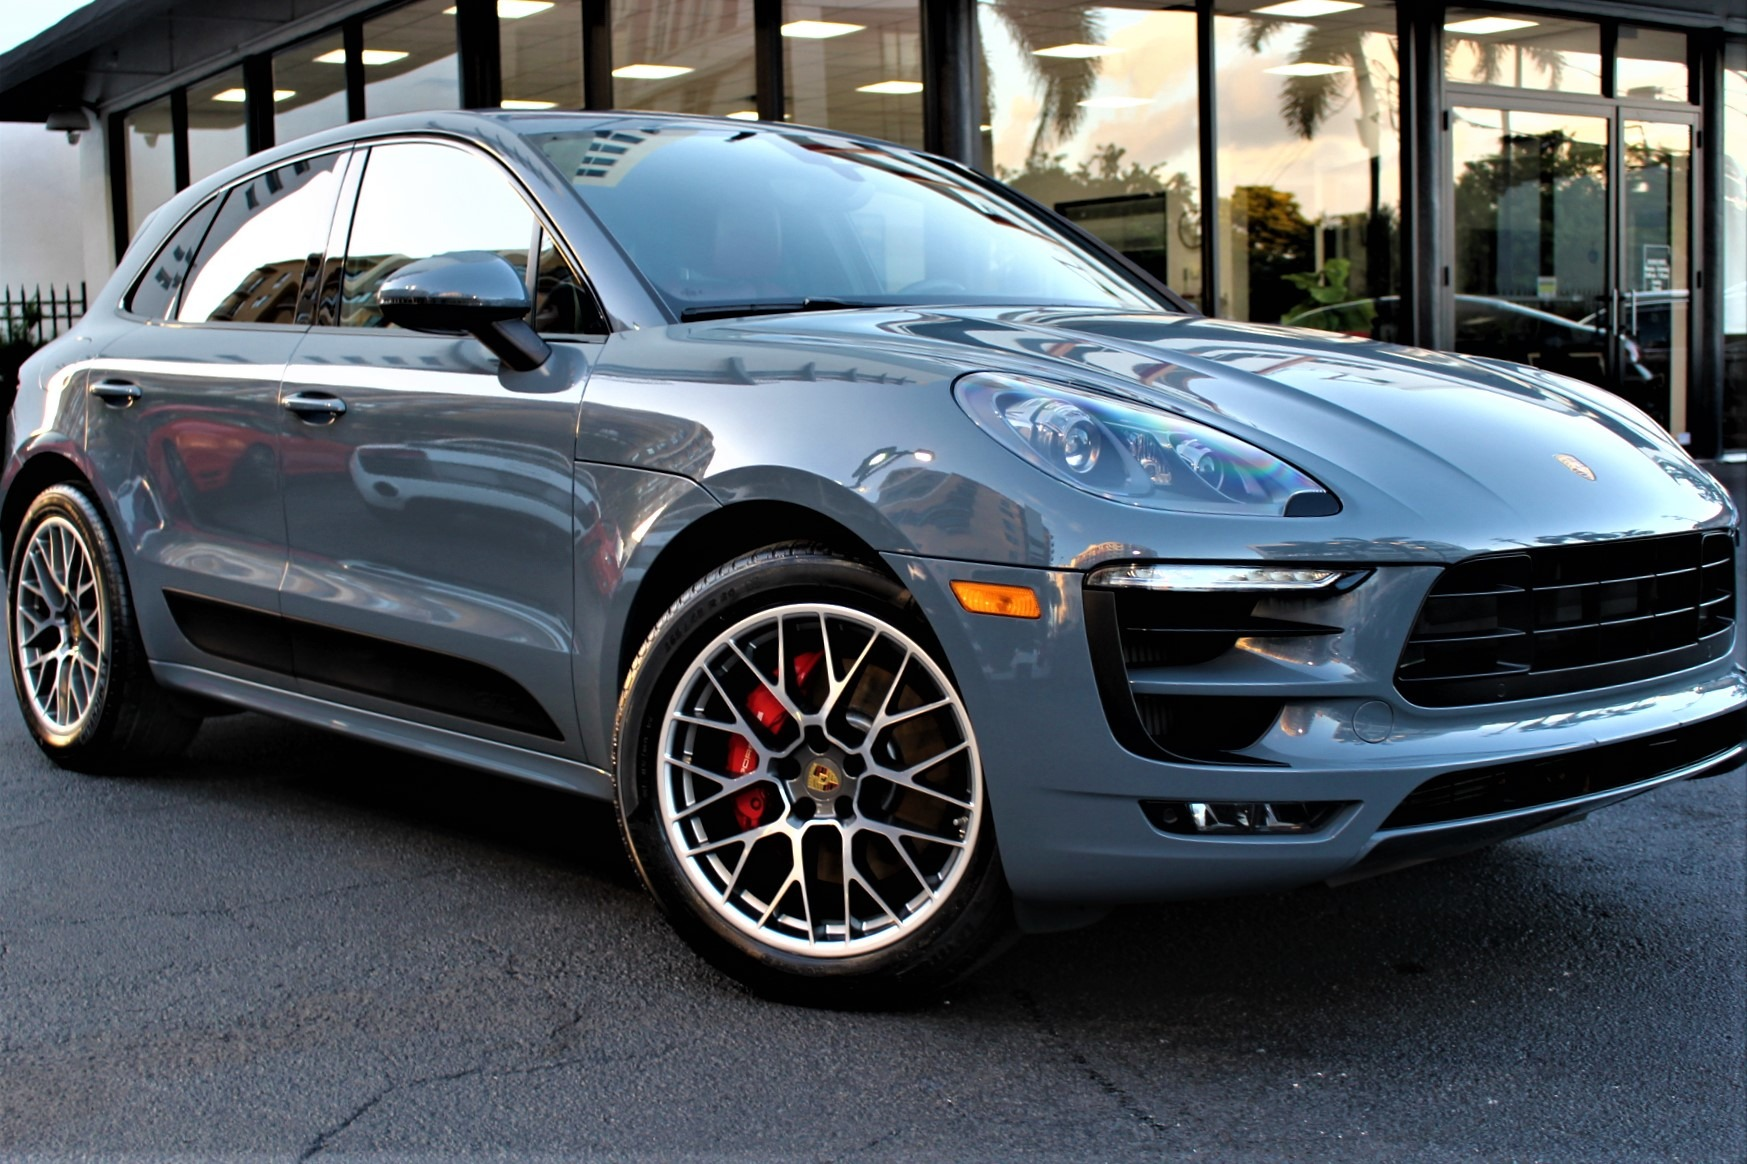 Used 2018 Porsche Macan GTS for sale $73,850 at The Gables Sports Cars in Miami FL 33146 1